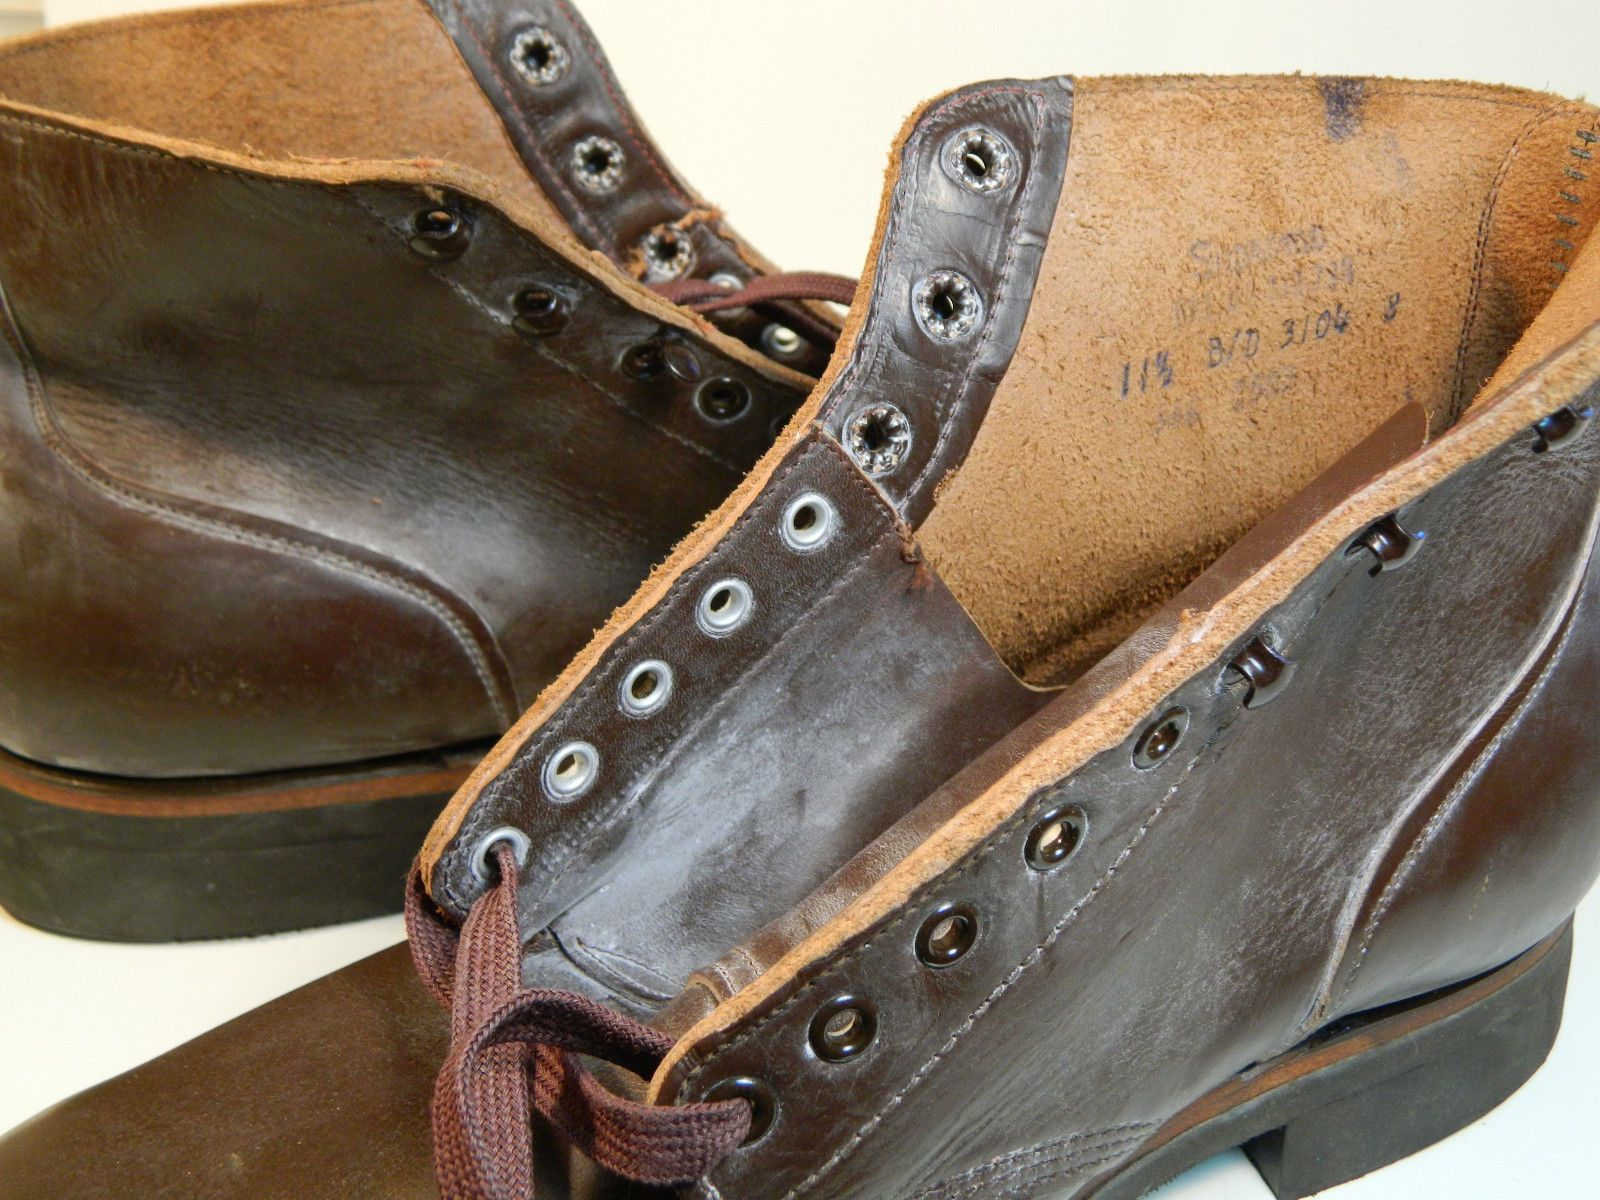 84e7779b1f494 1960's SEIBERLING Leather Boots / US Men's Size: 11 1/2 B/D ...